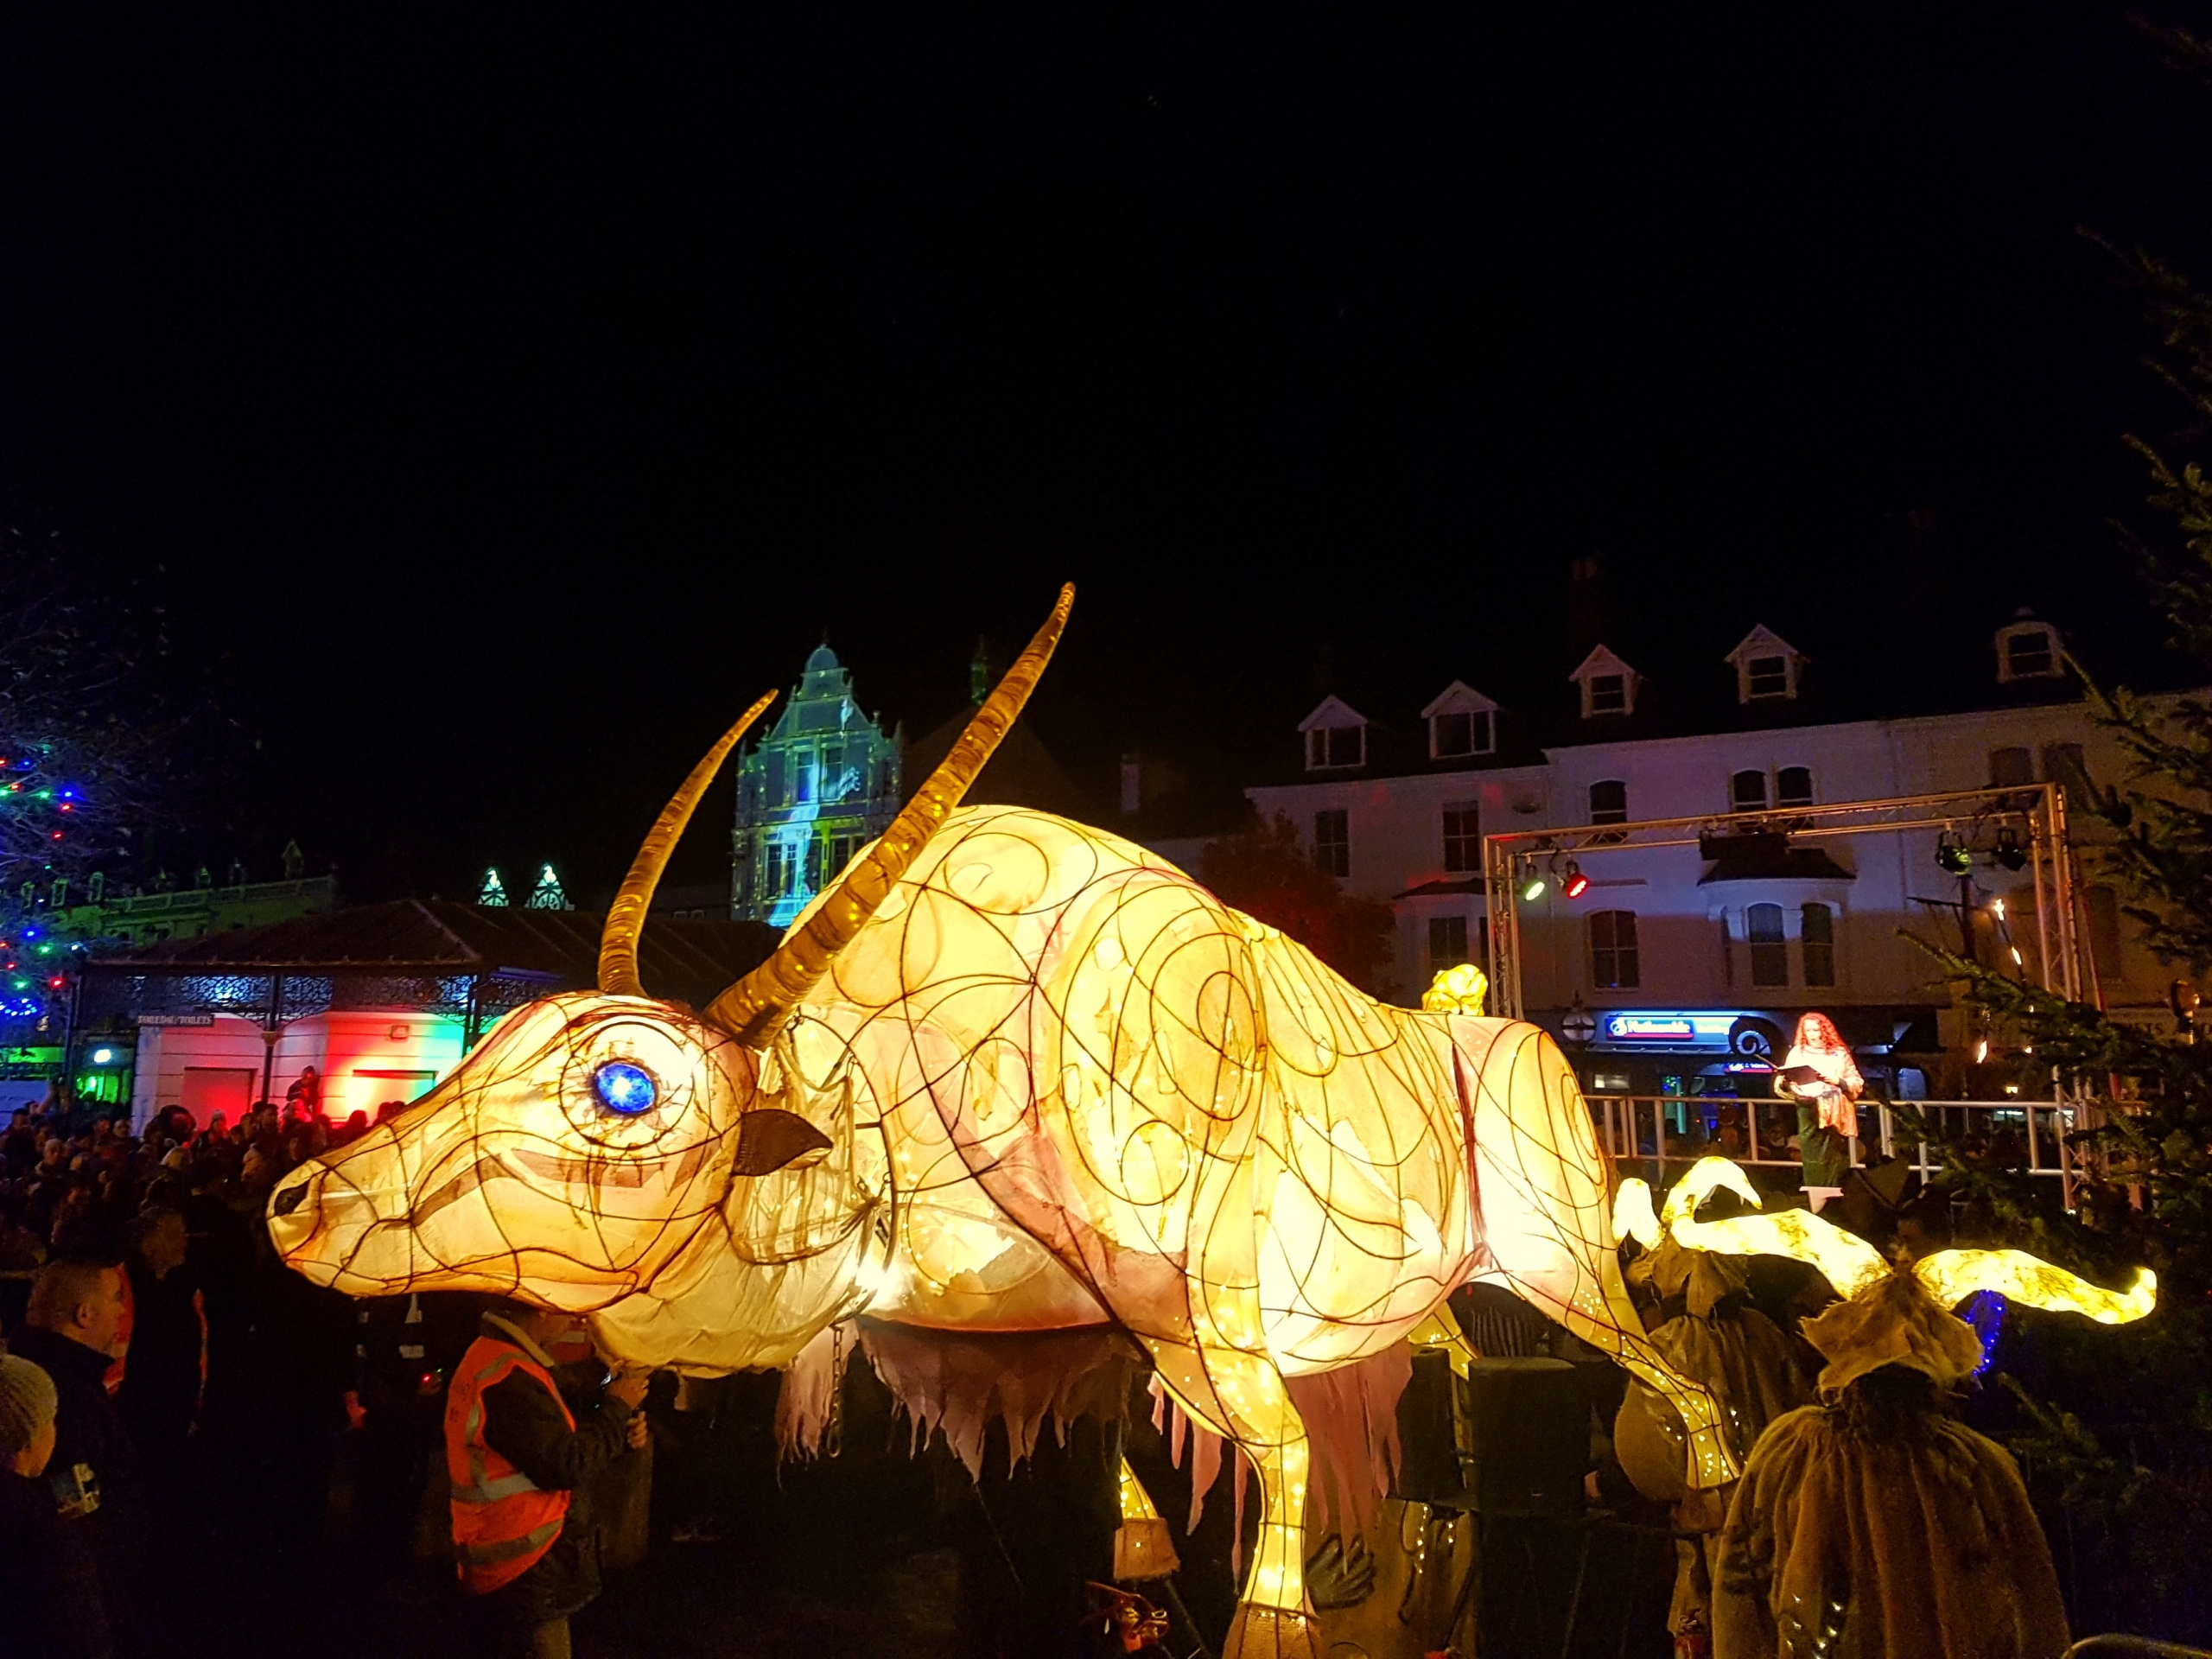 oloured outdoor lighting at the Llandudno Winter Light / Golau Gaeaf event, in North Wales. Illuminated horned ox at parade finale with opera singer, on outdoor stage. Illuminated toilets in background.